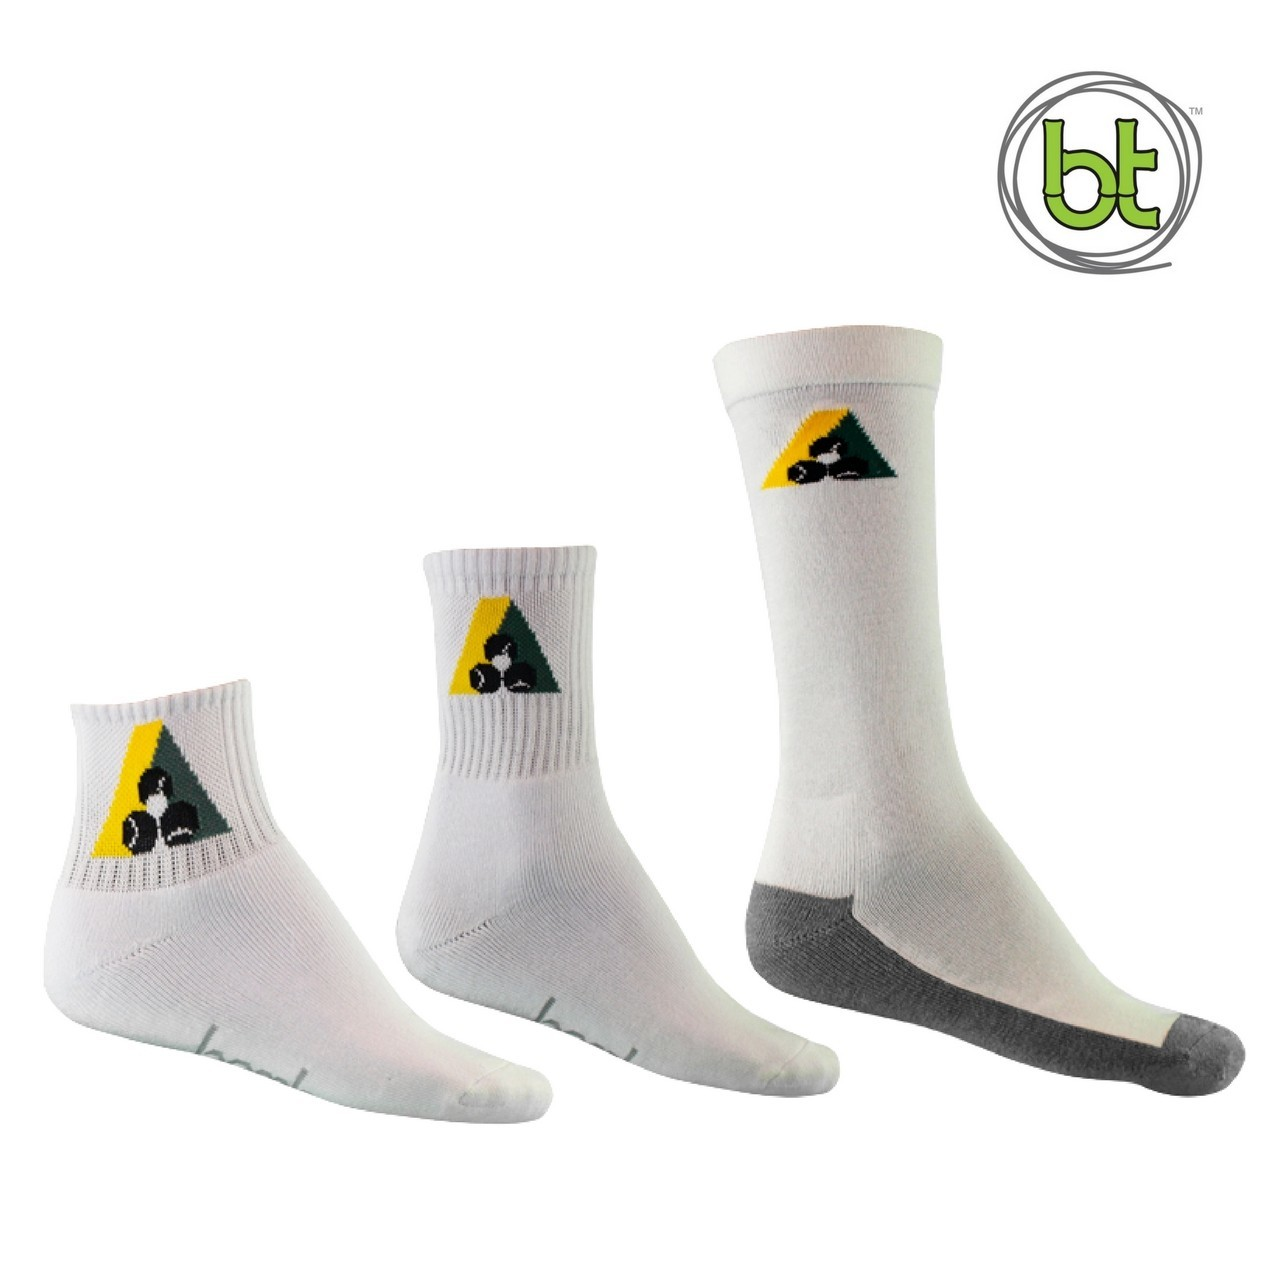 Bamboo sock Special - 3 for $30